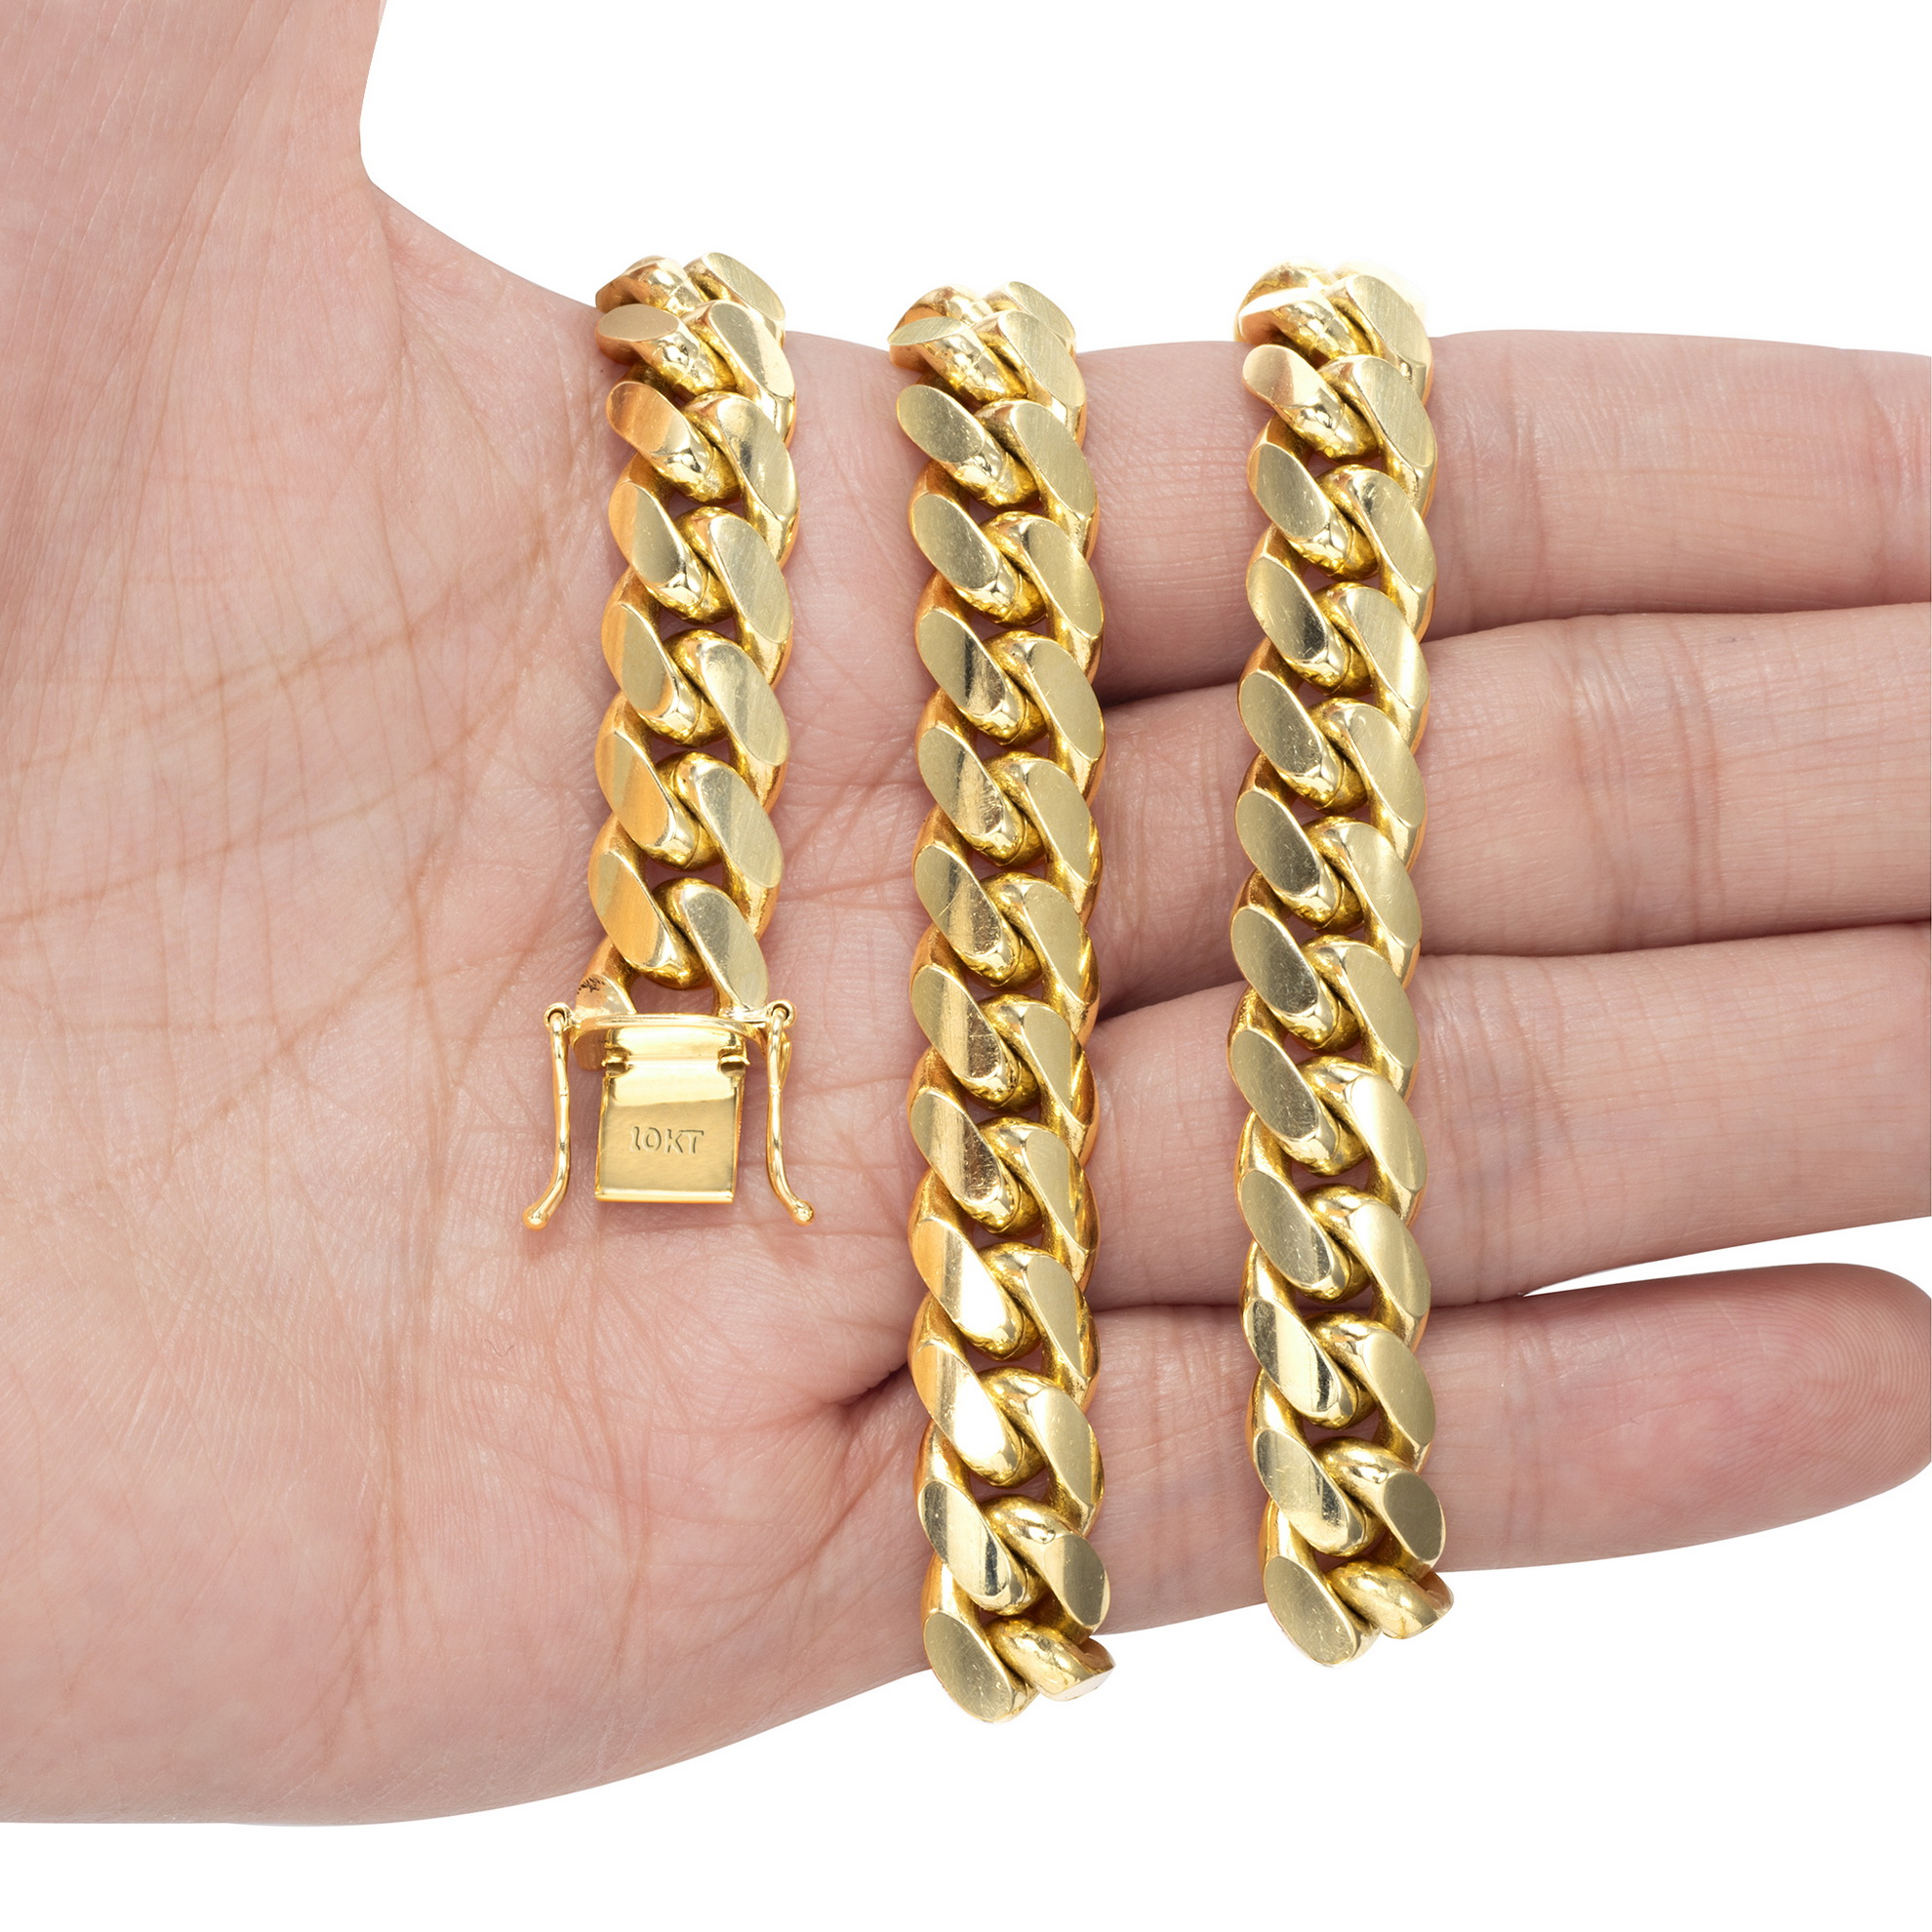 10K-Yellow-Gold-Solid-2-7mm-10mm-Miami-Cuban-Link-Chain-Necklace-Bracelet-7-034-30-034 thumbnail 12